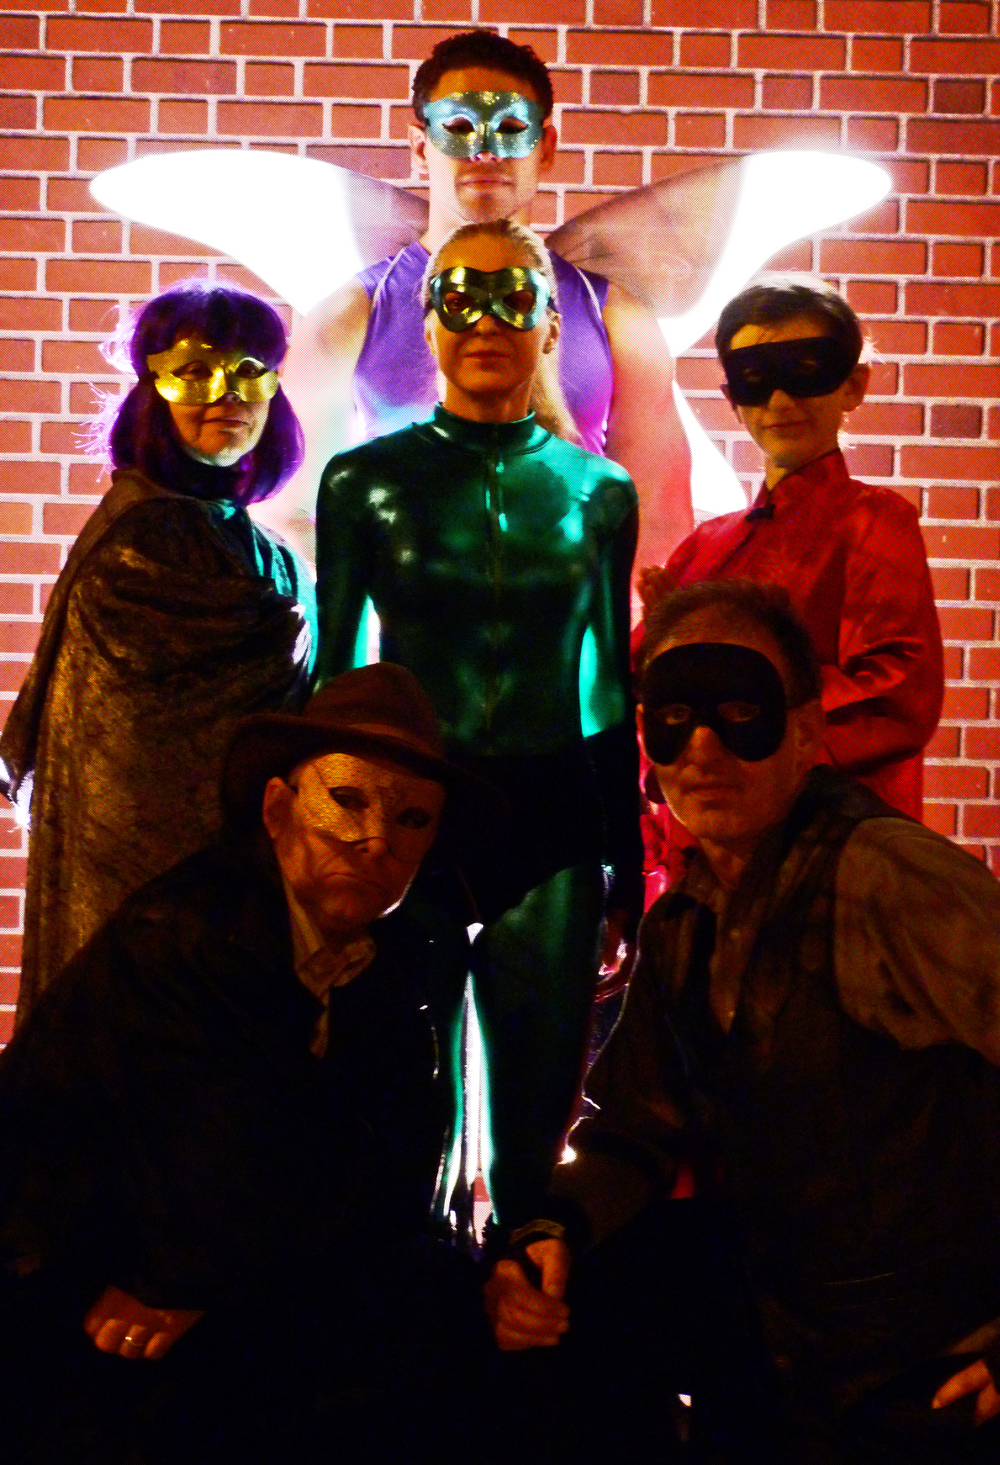 Cast of  Superheroes , from top to bottom, l to r:  Brave Fairy, Omni, Mantis, Confucius, Zygote, Dr. Intelligent